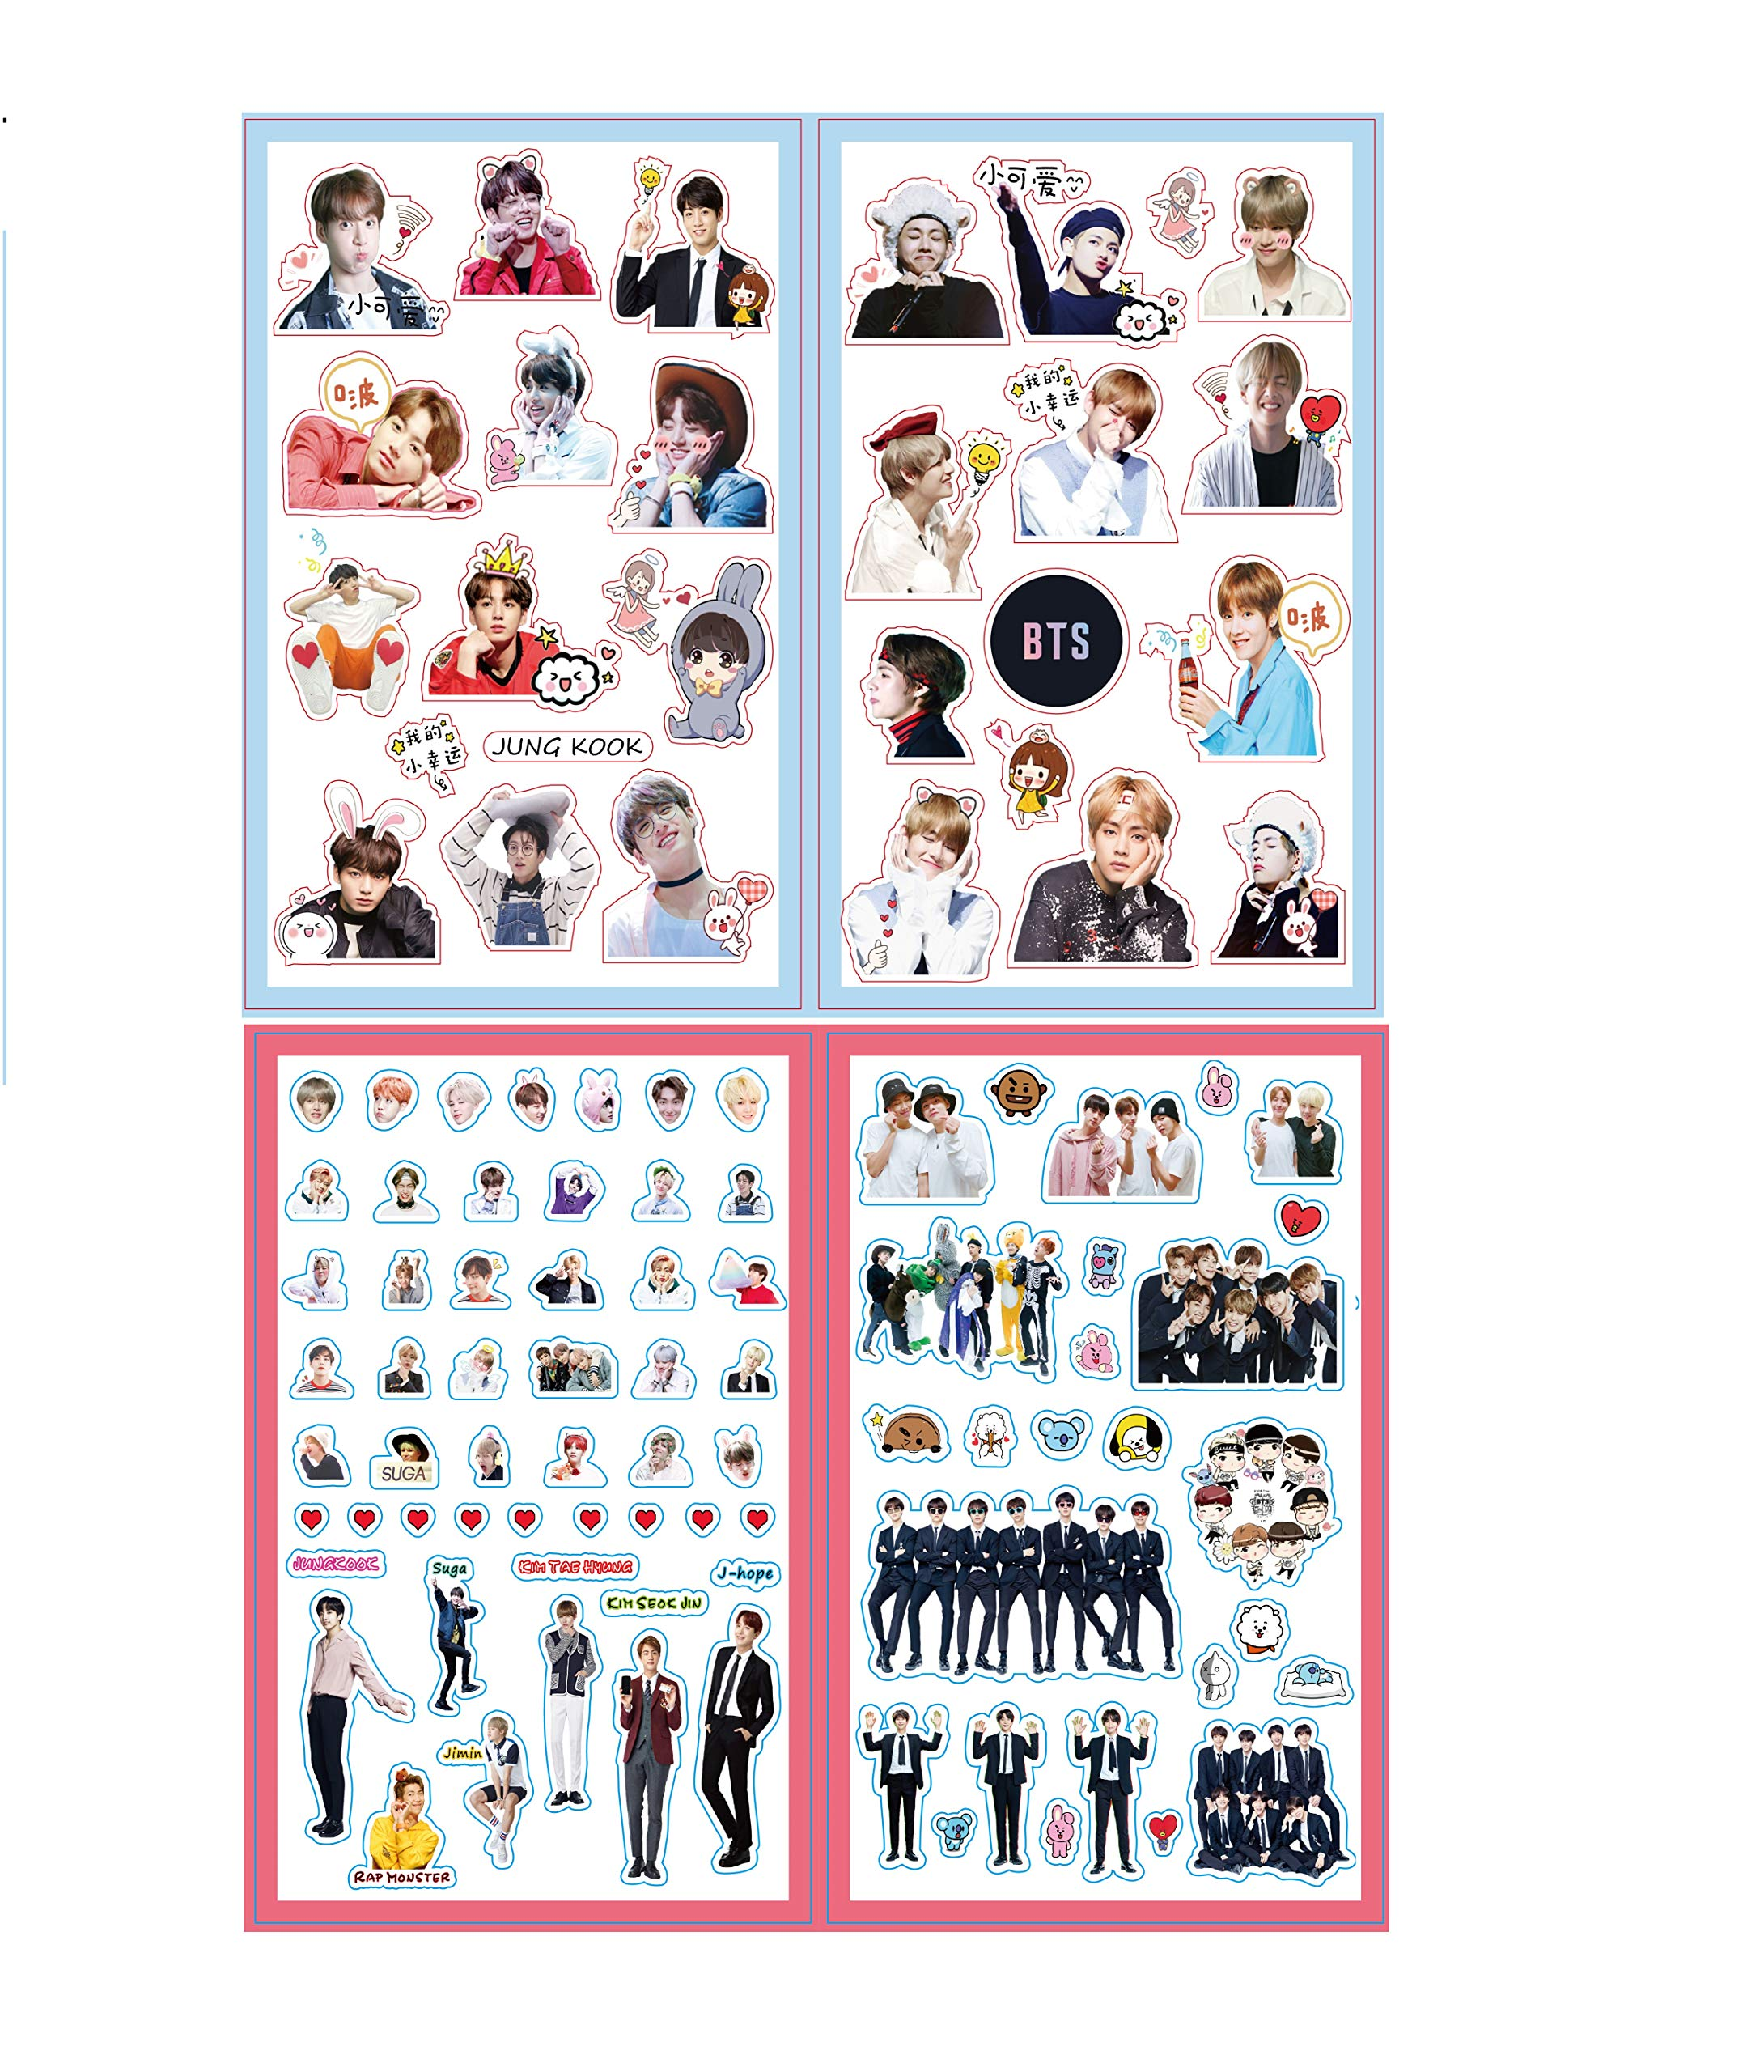 BTS Stickers and Facial Decals Paper Doll Sticker Pack Set for Phone Car Pad Laptop Water Bottles,Bangtan Boys Gift Set for Army by KPOPBTS (Image #9)